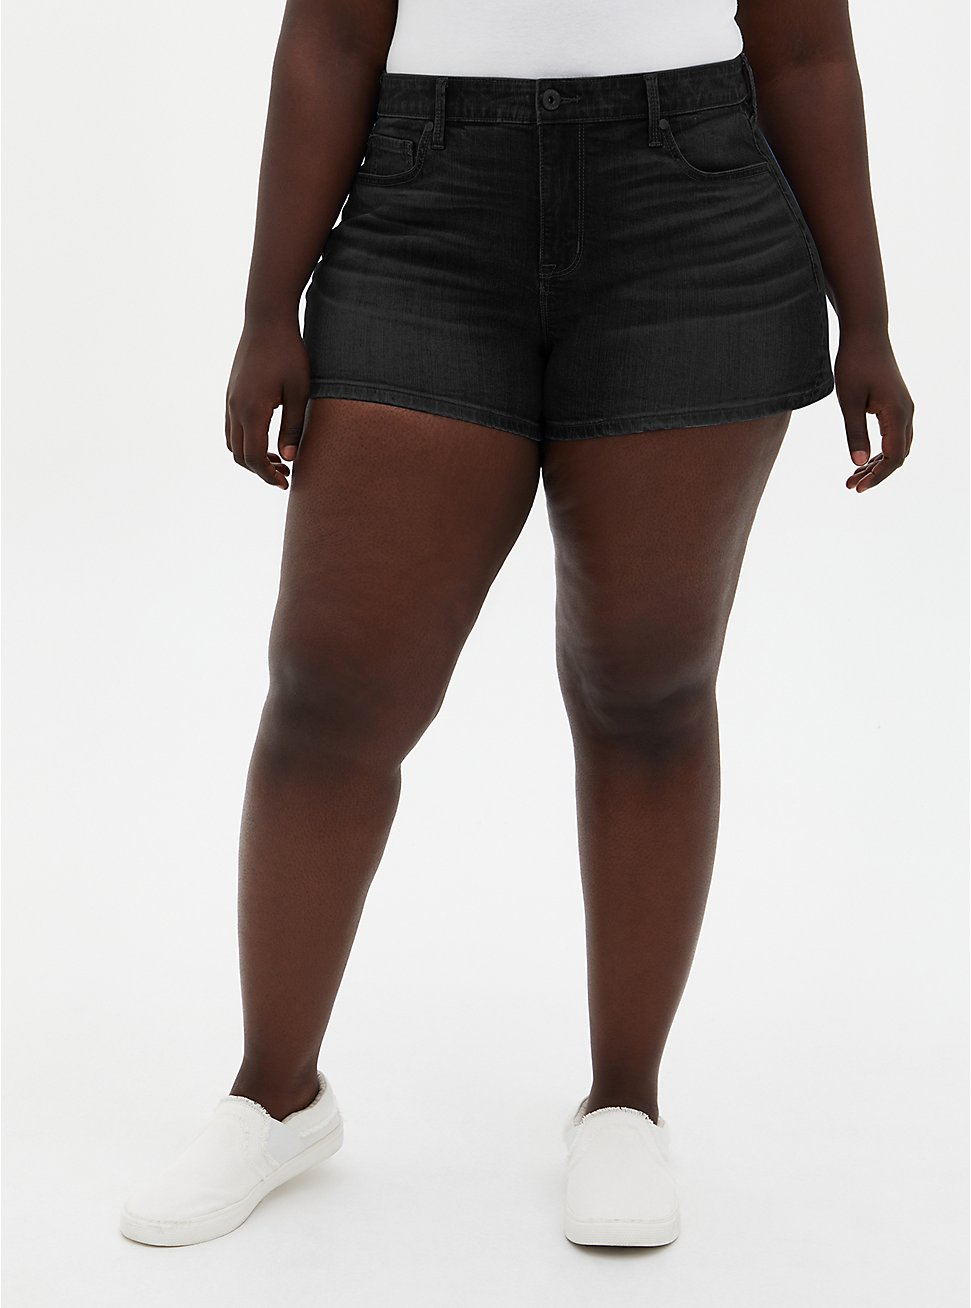 High Rise A-Line Shortie Short - Vintage Stretch Washed Black, , fitModel1-hires